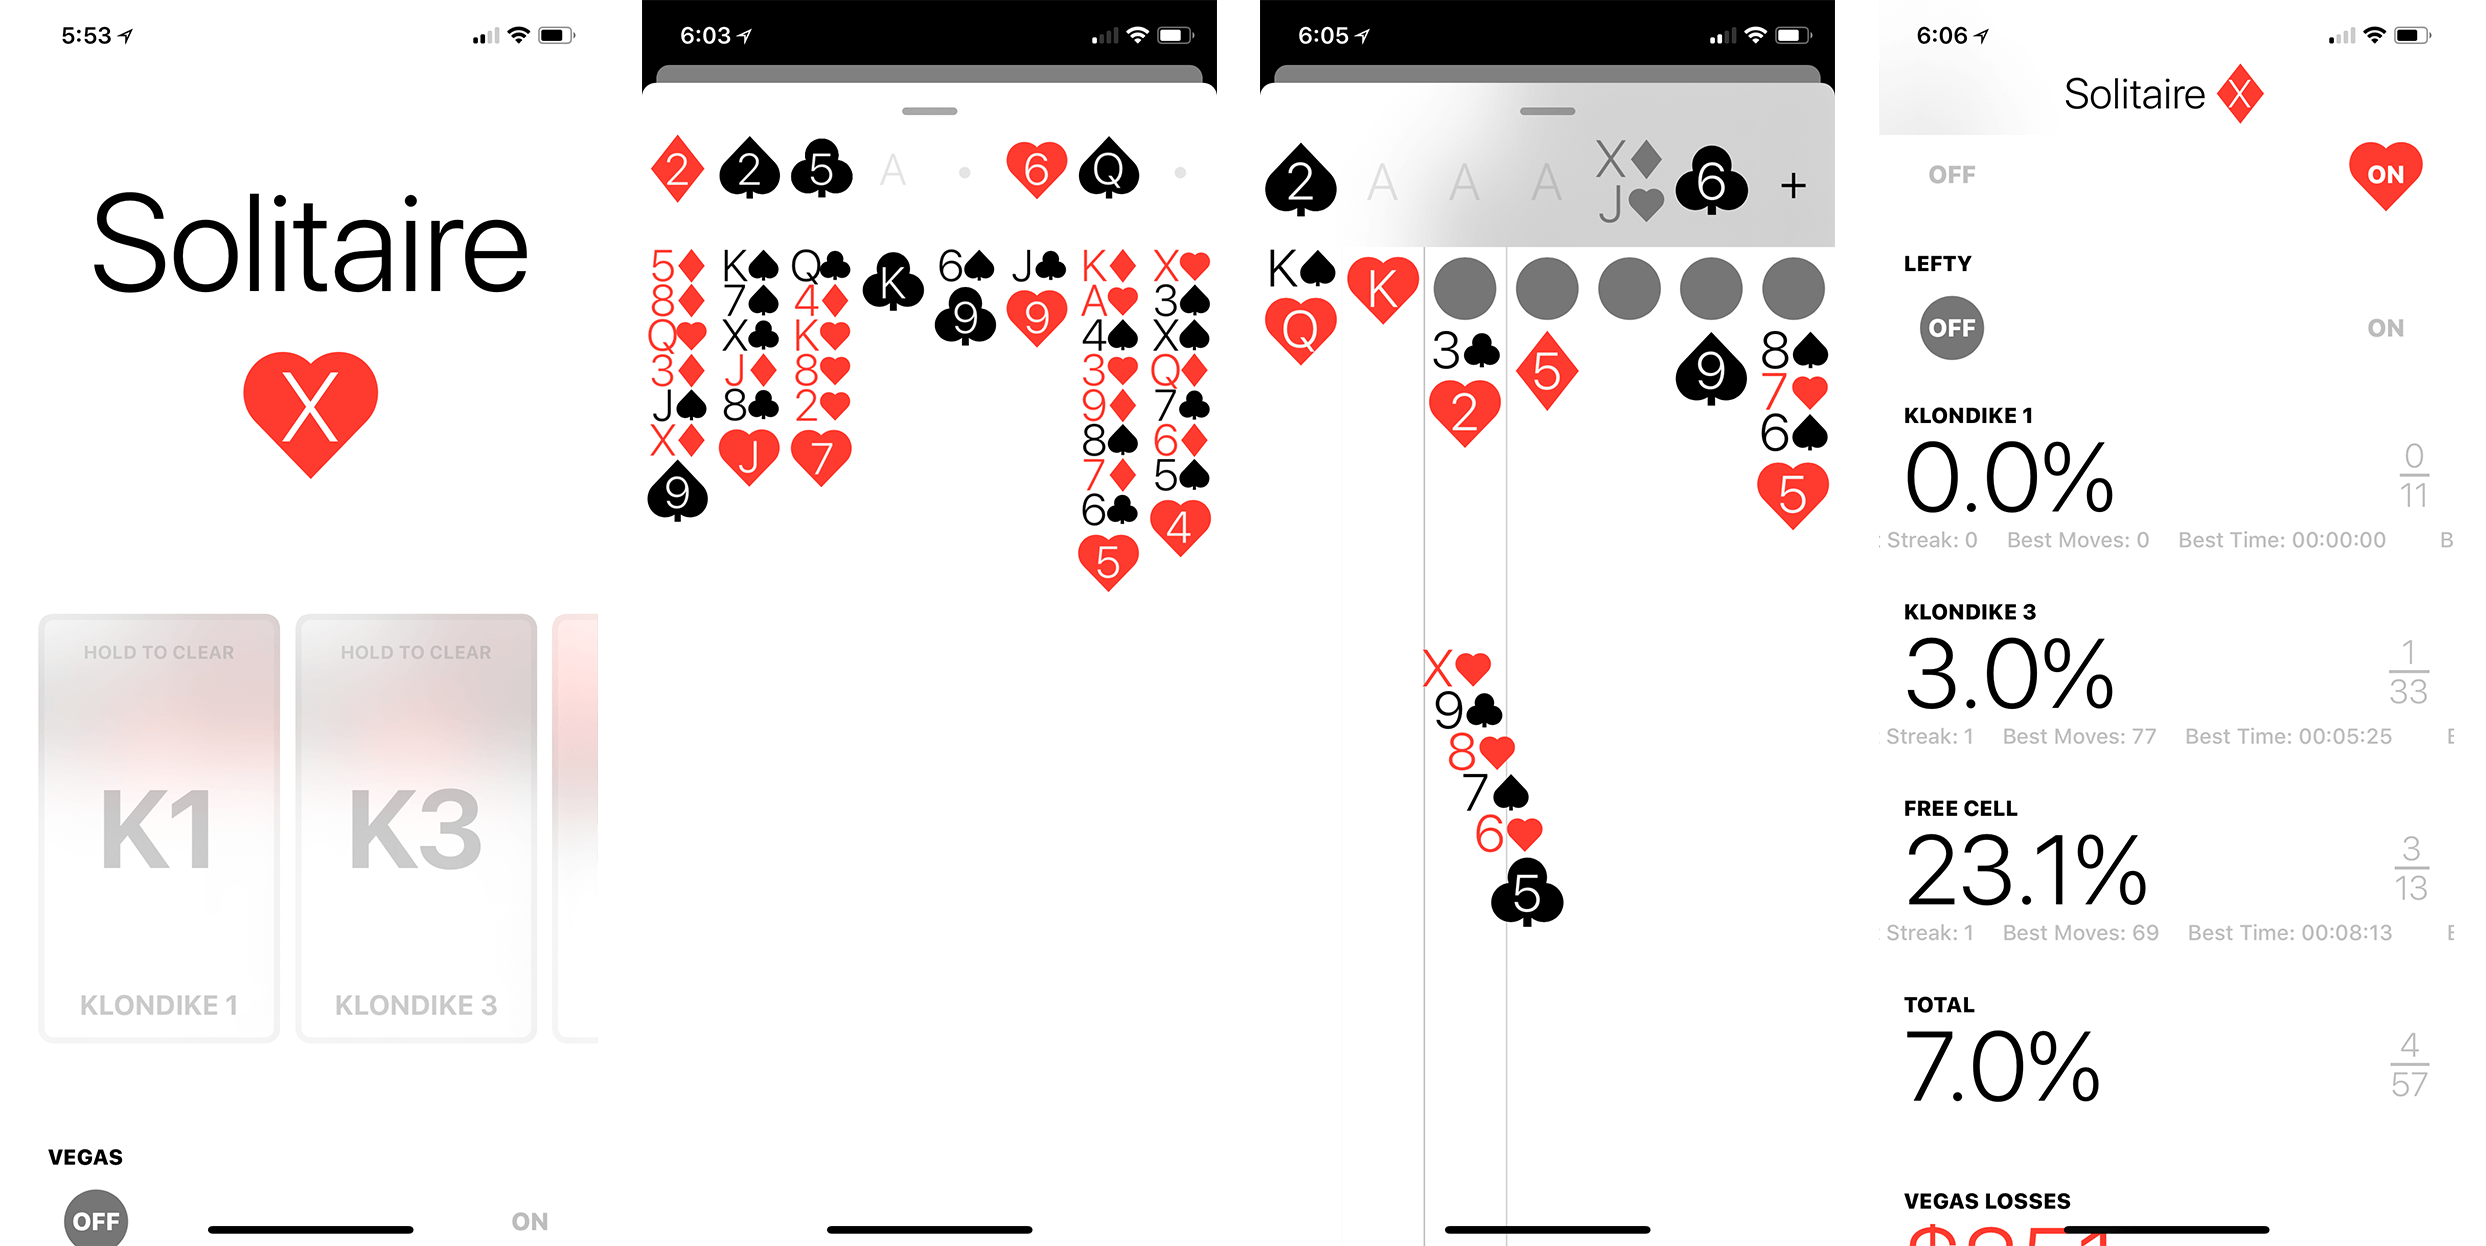 A screenshot from Solitaire 7